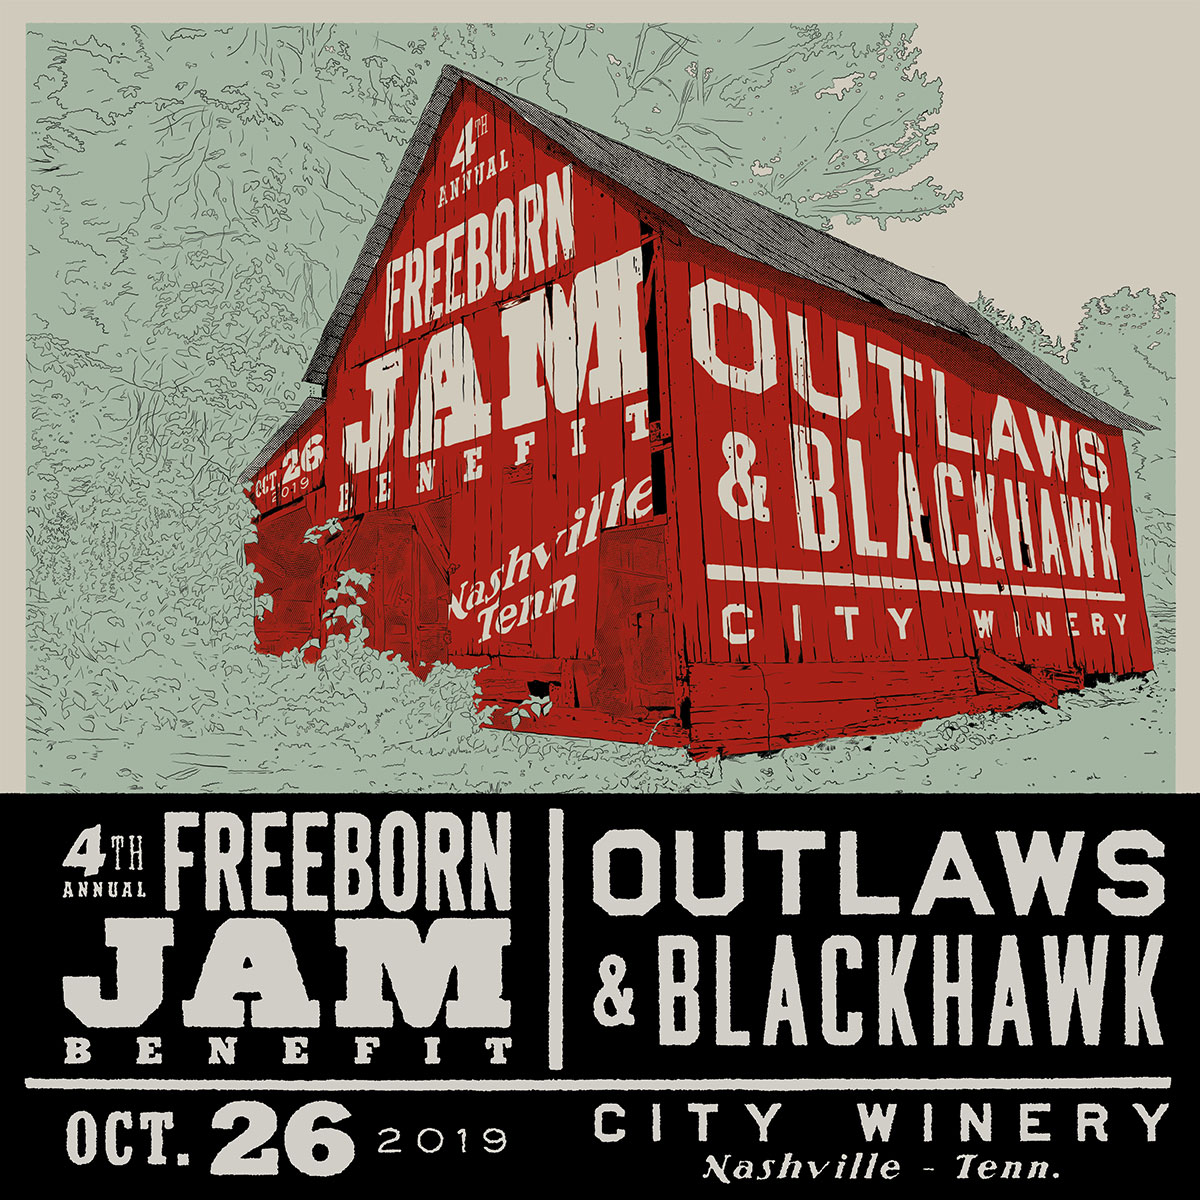 ANNOUNCING THE 4TH ANNUAL FREEBORN JAM!